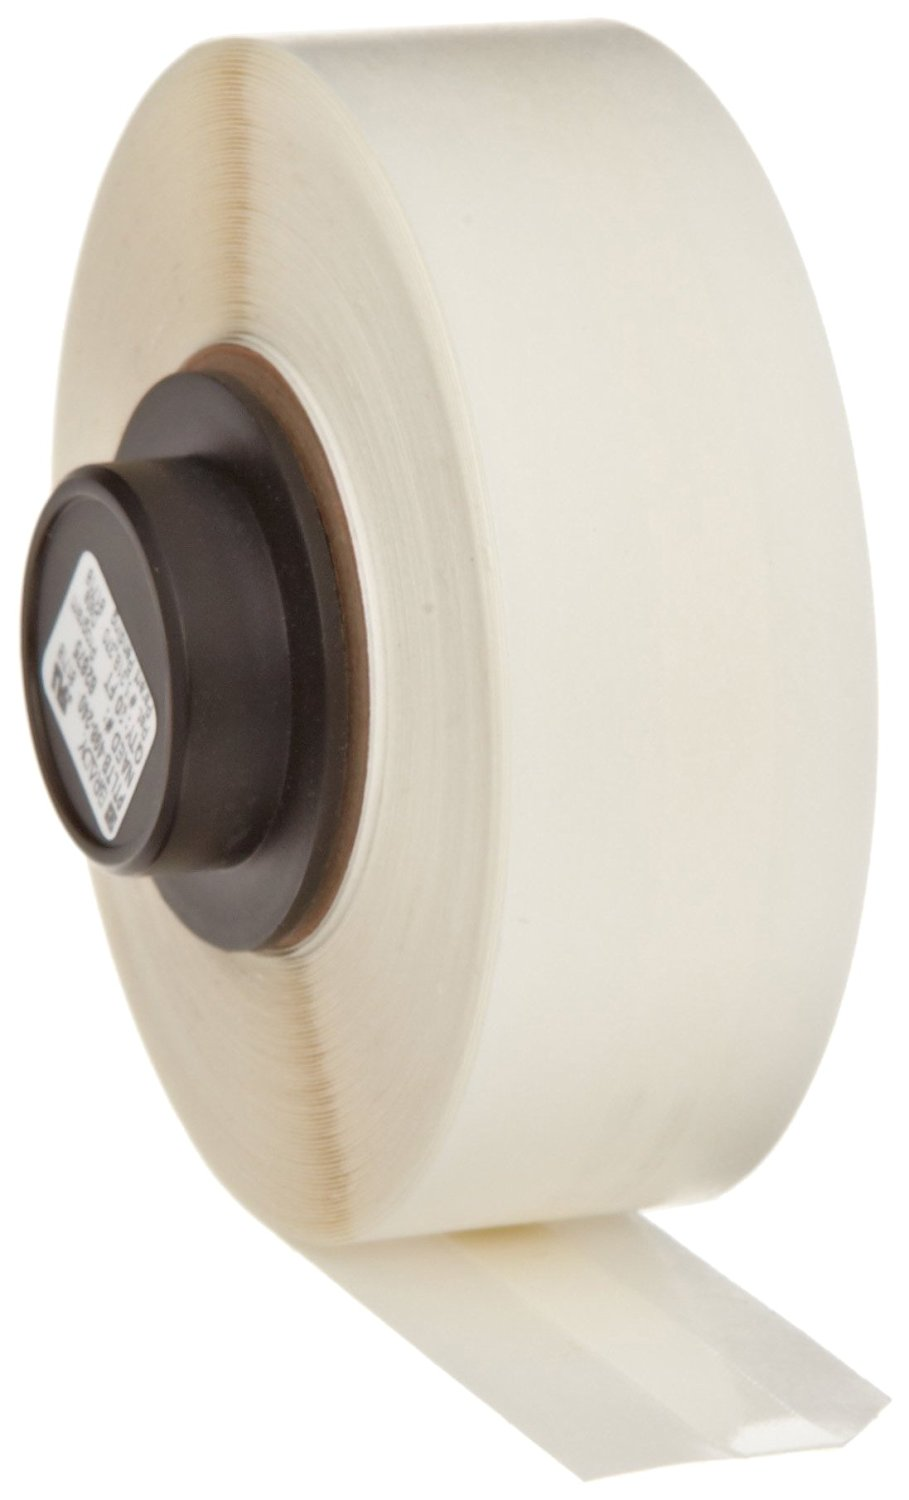 "Brady PTLTB-498-240 TLS 2200 And TLS PC Link 30' Height, 0.24"" Width, B-498 Repositionable Vinyl Cloth, White Color Terminal Block Marker"